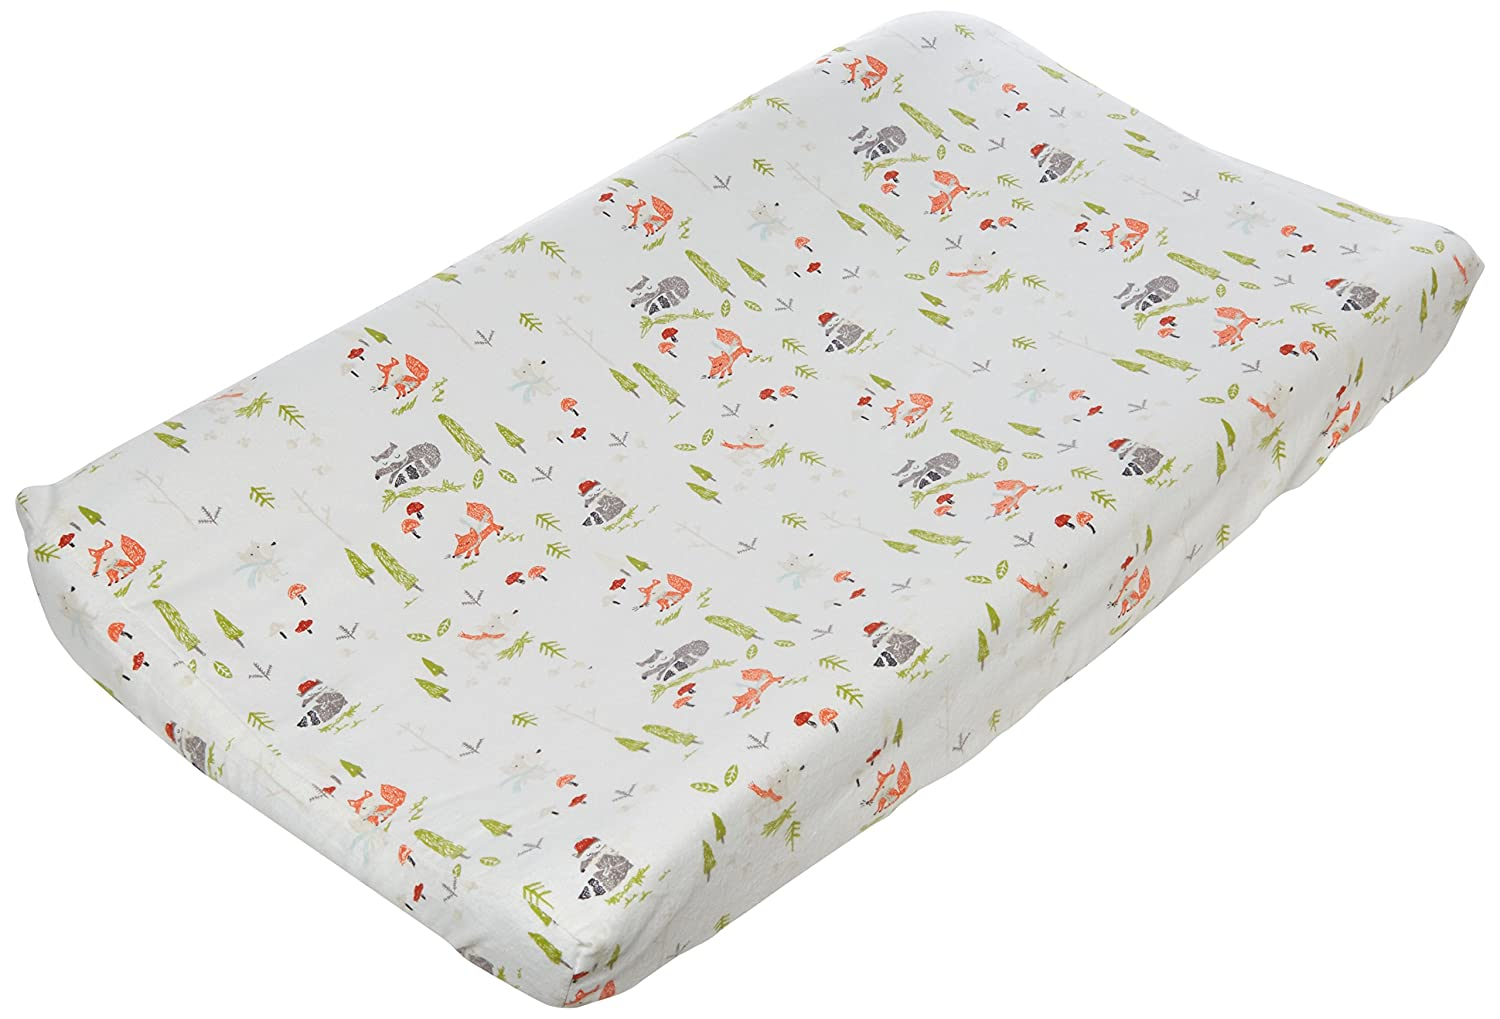 Trend Lab Winter Woods Branded goods Deluxe Pad Flannel Cover Courier shipping free shipping Changing